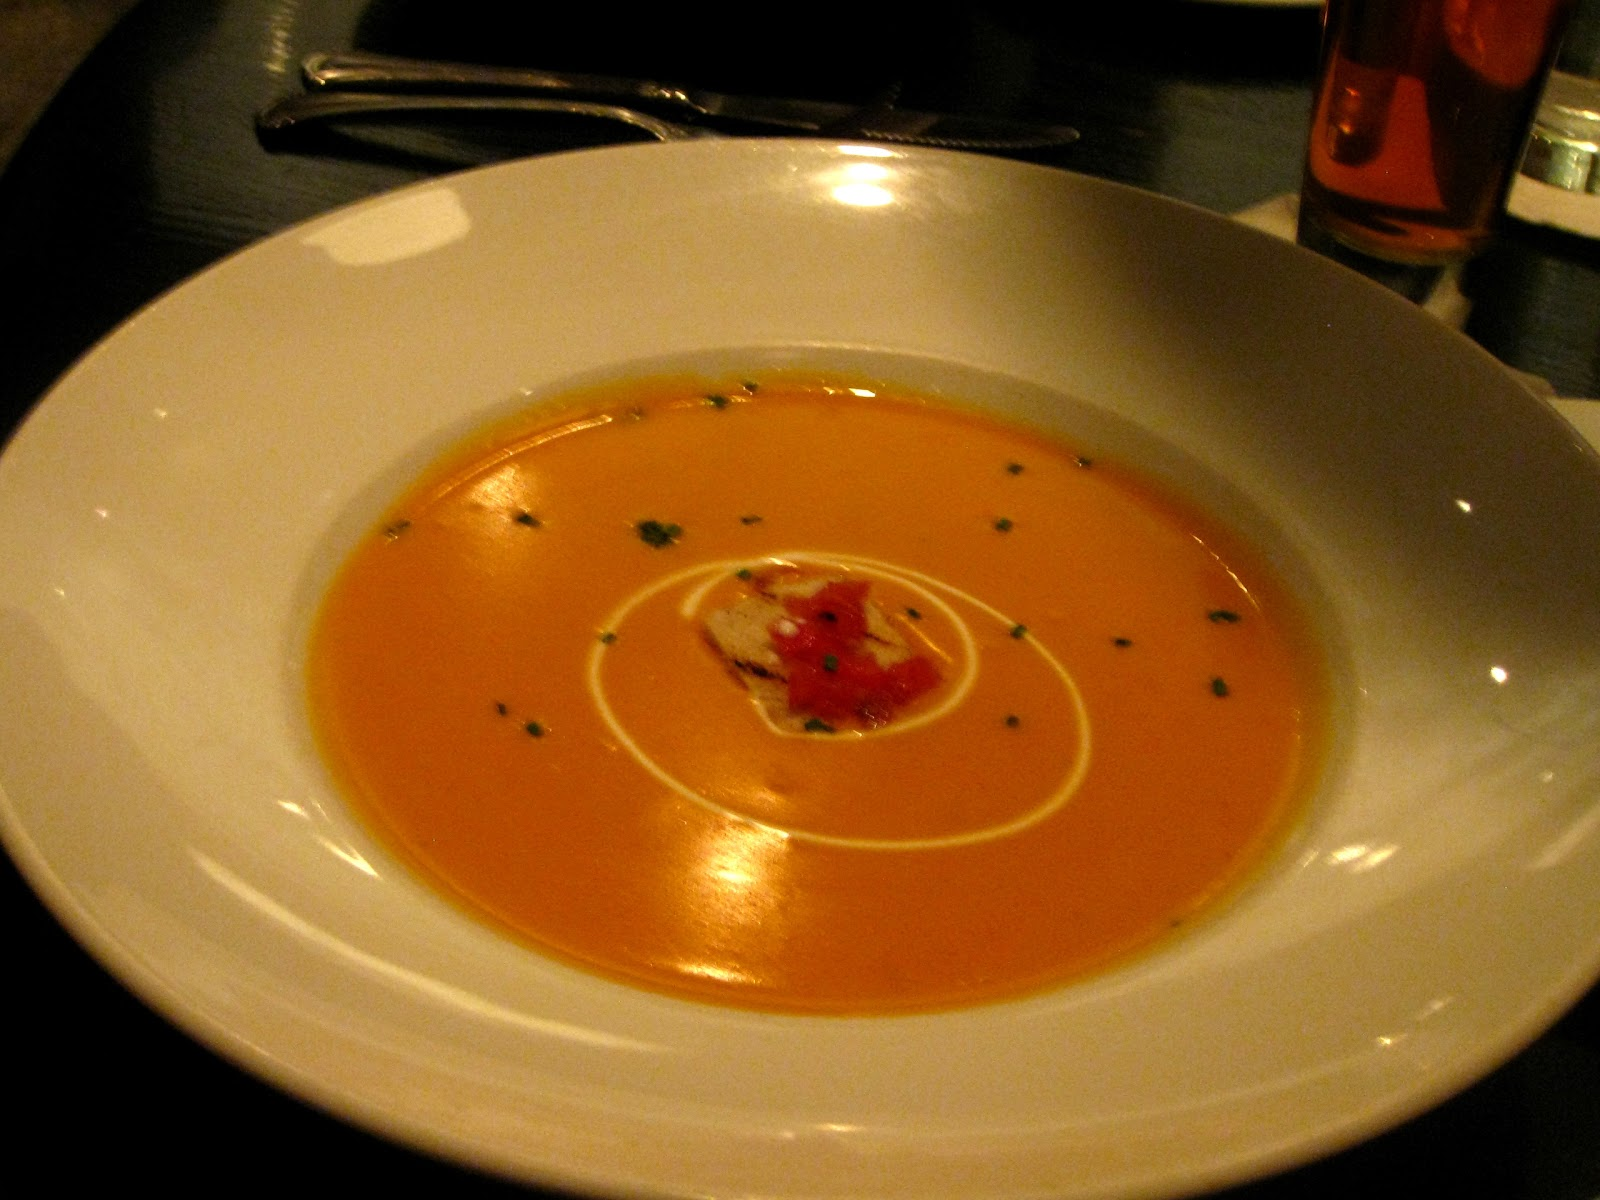 the third appetizer choice was shrimp bisque as you can